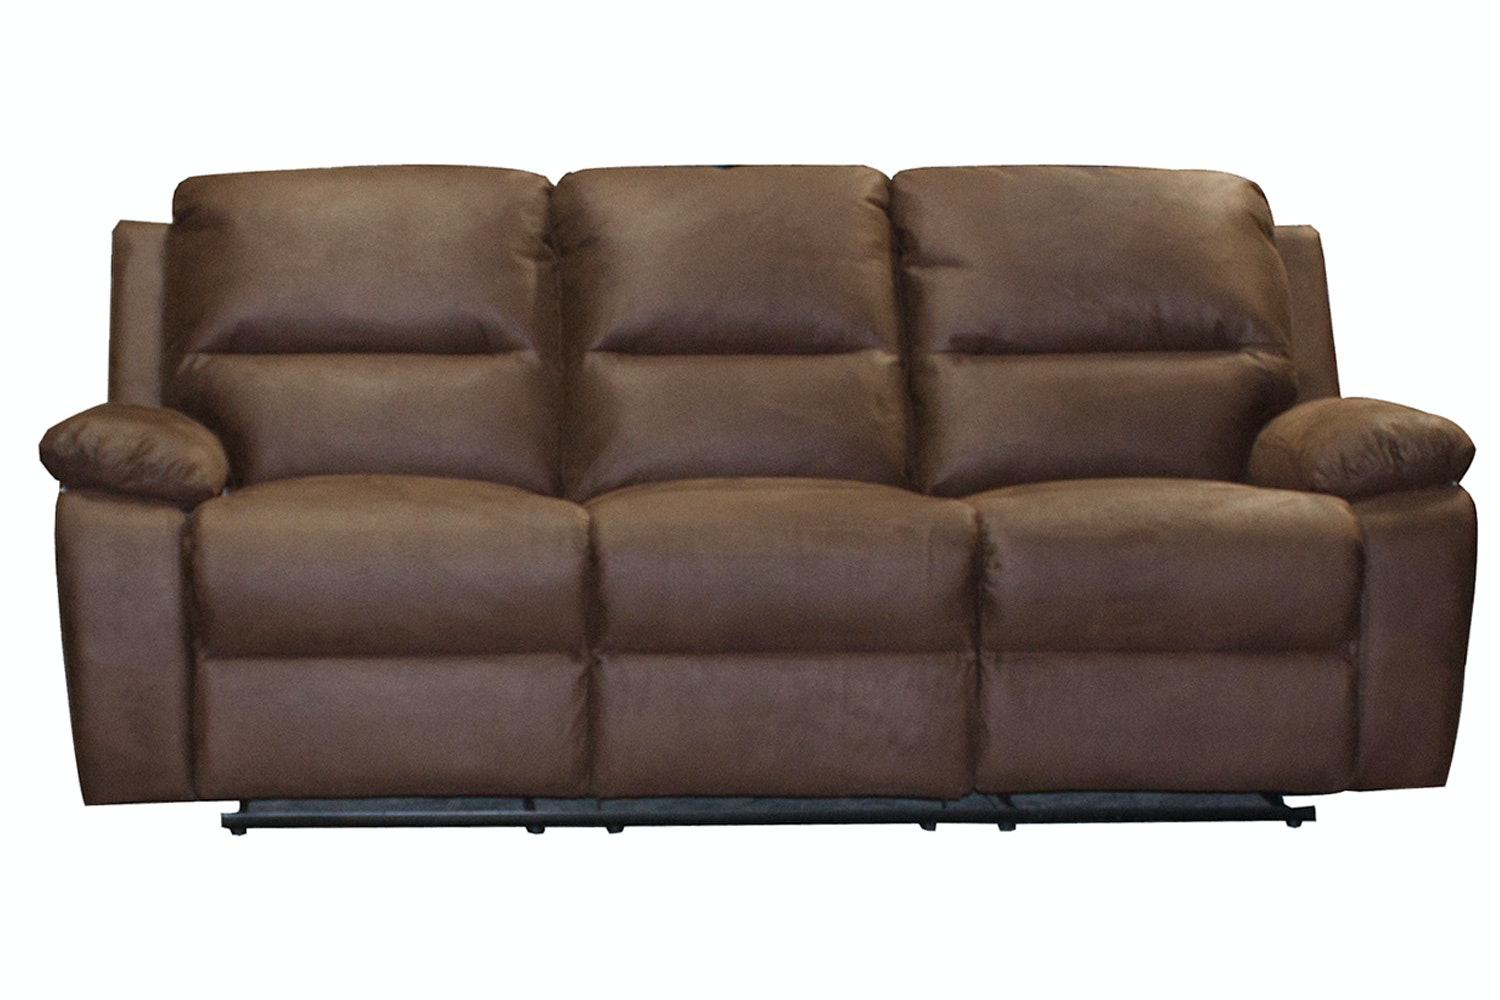 Paolo 3 Seater Recliner